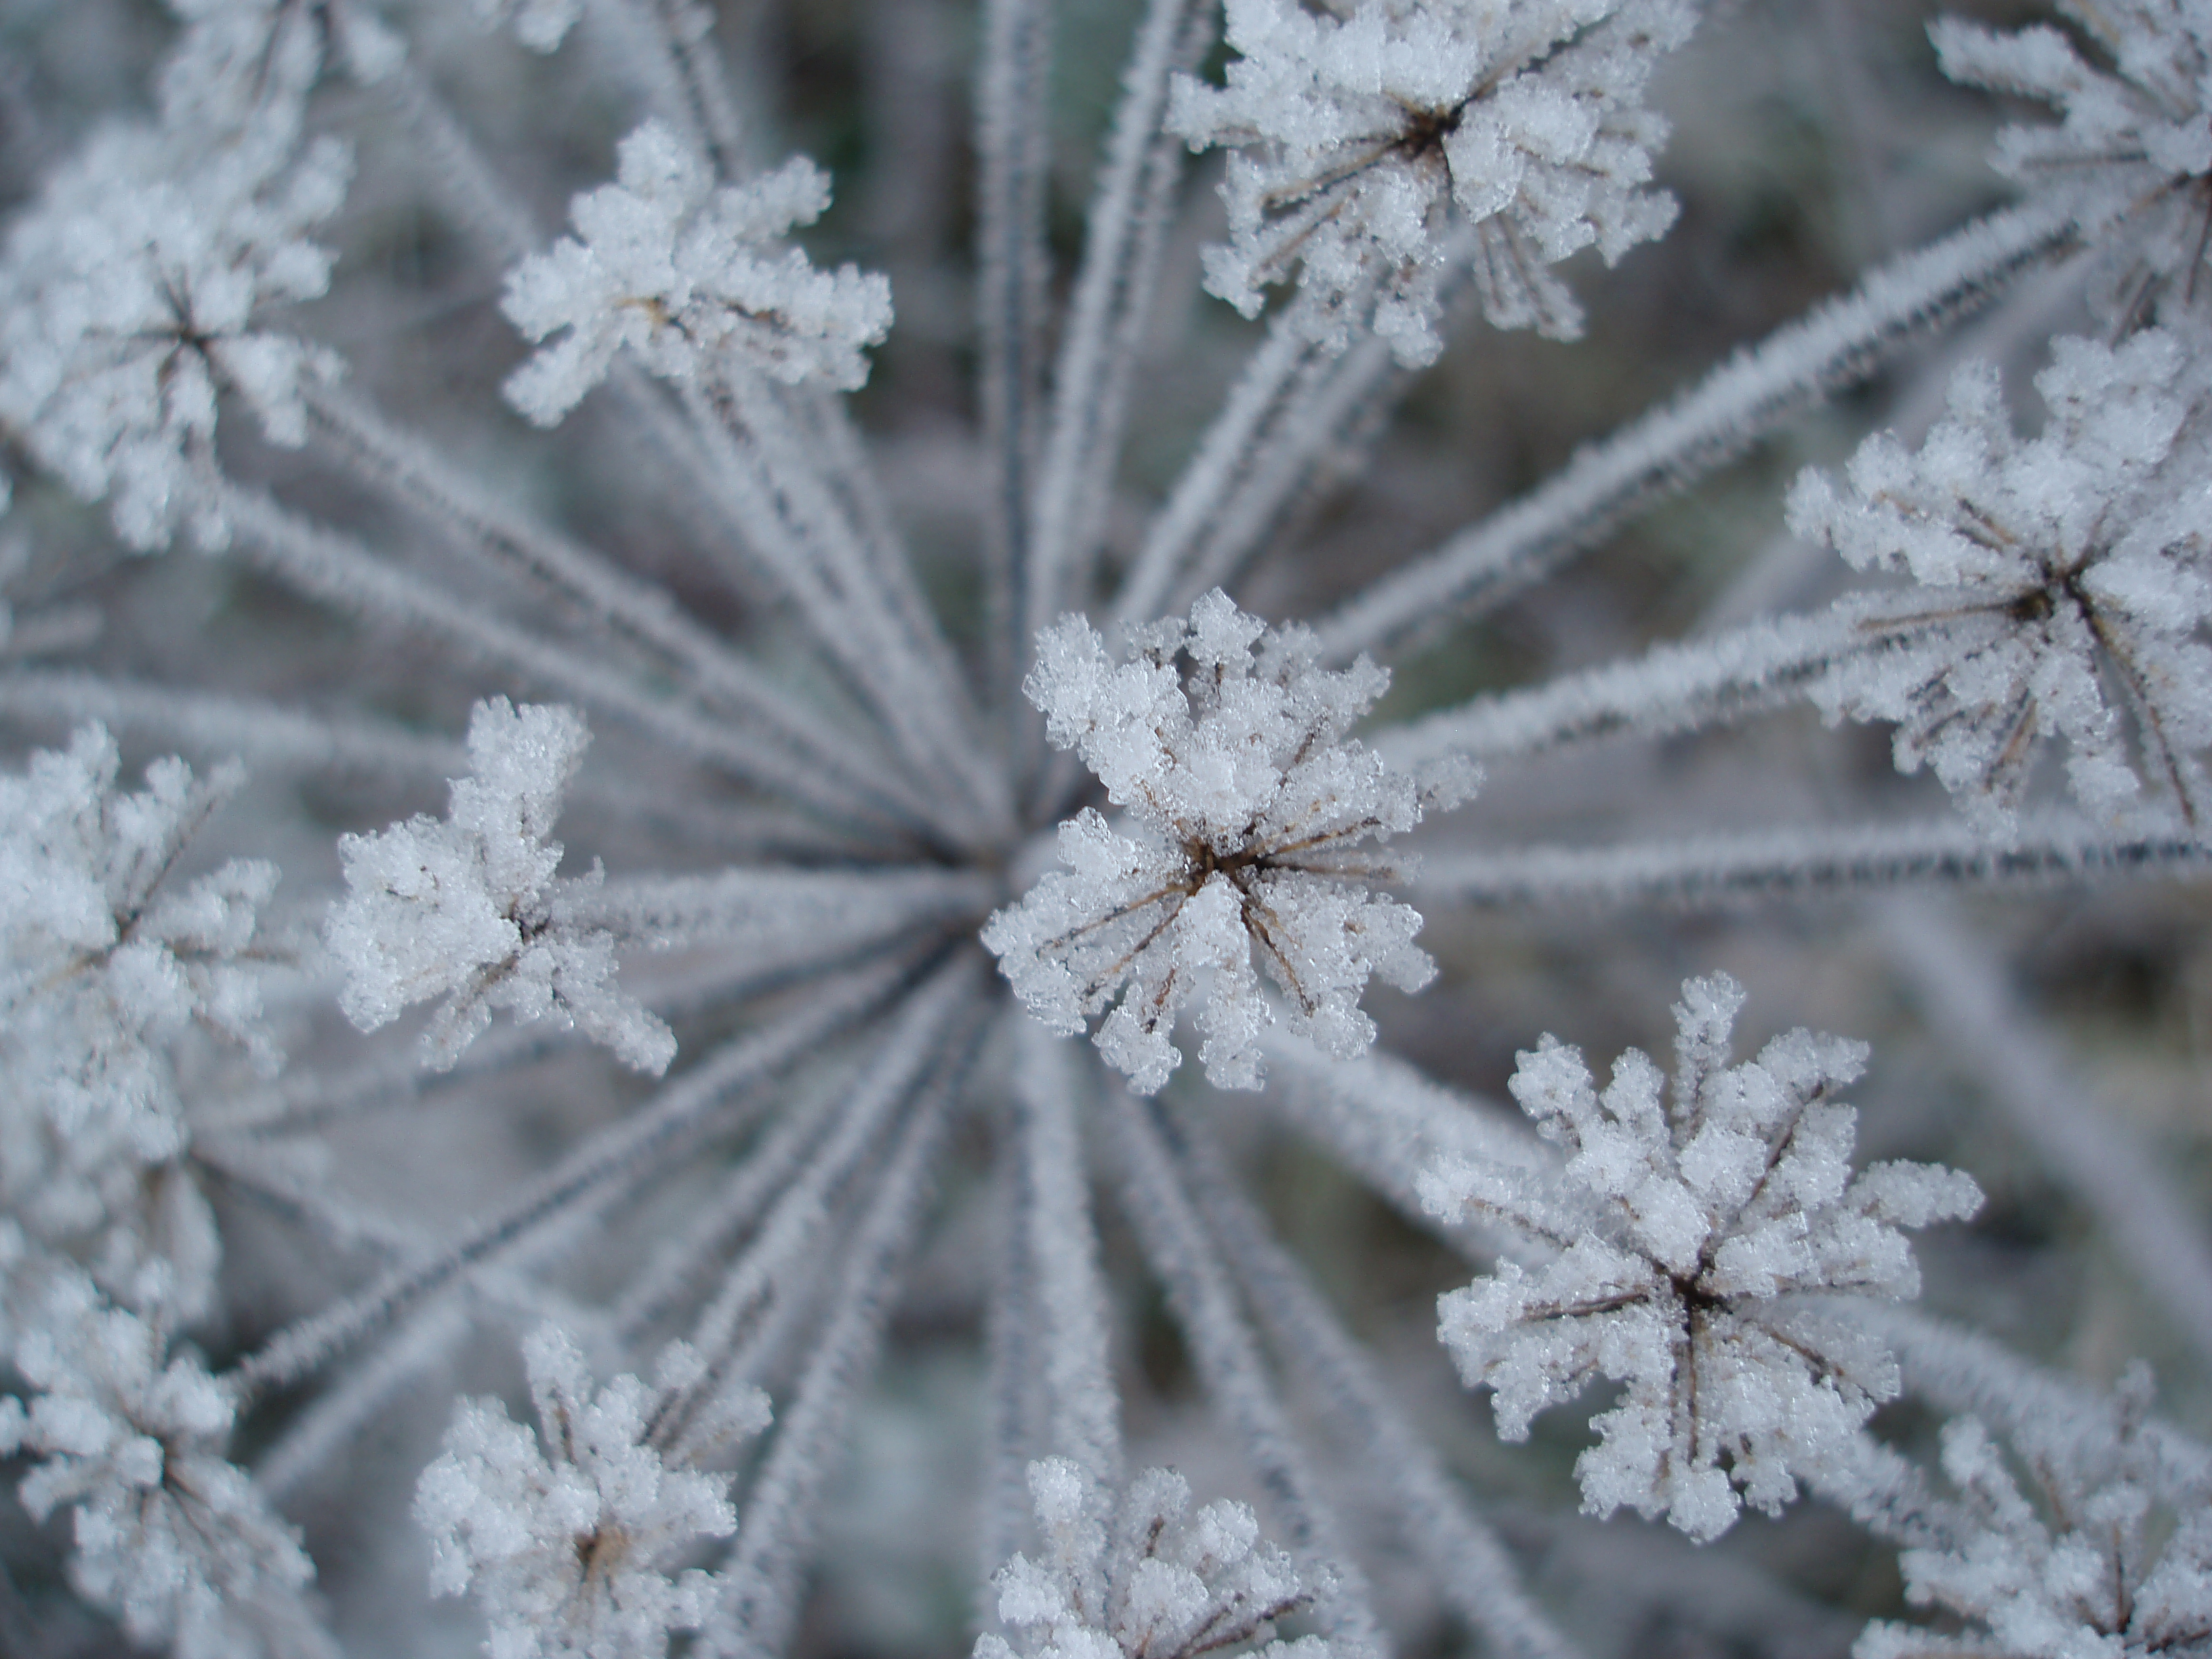 frost covered winter plants | Free backgrounds and textures | Cr103.com